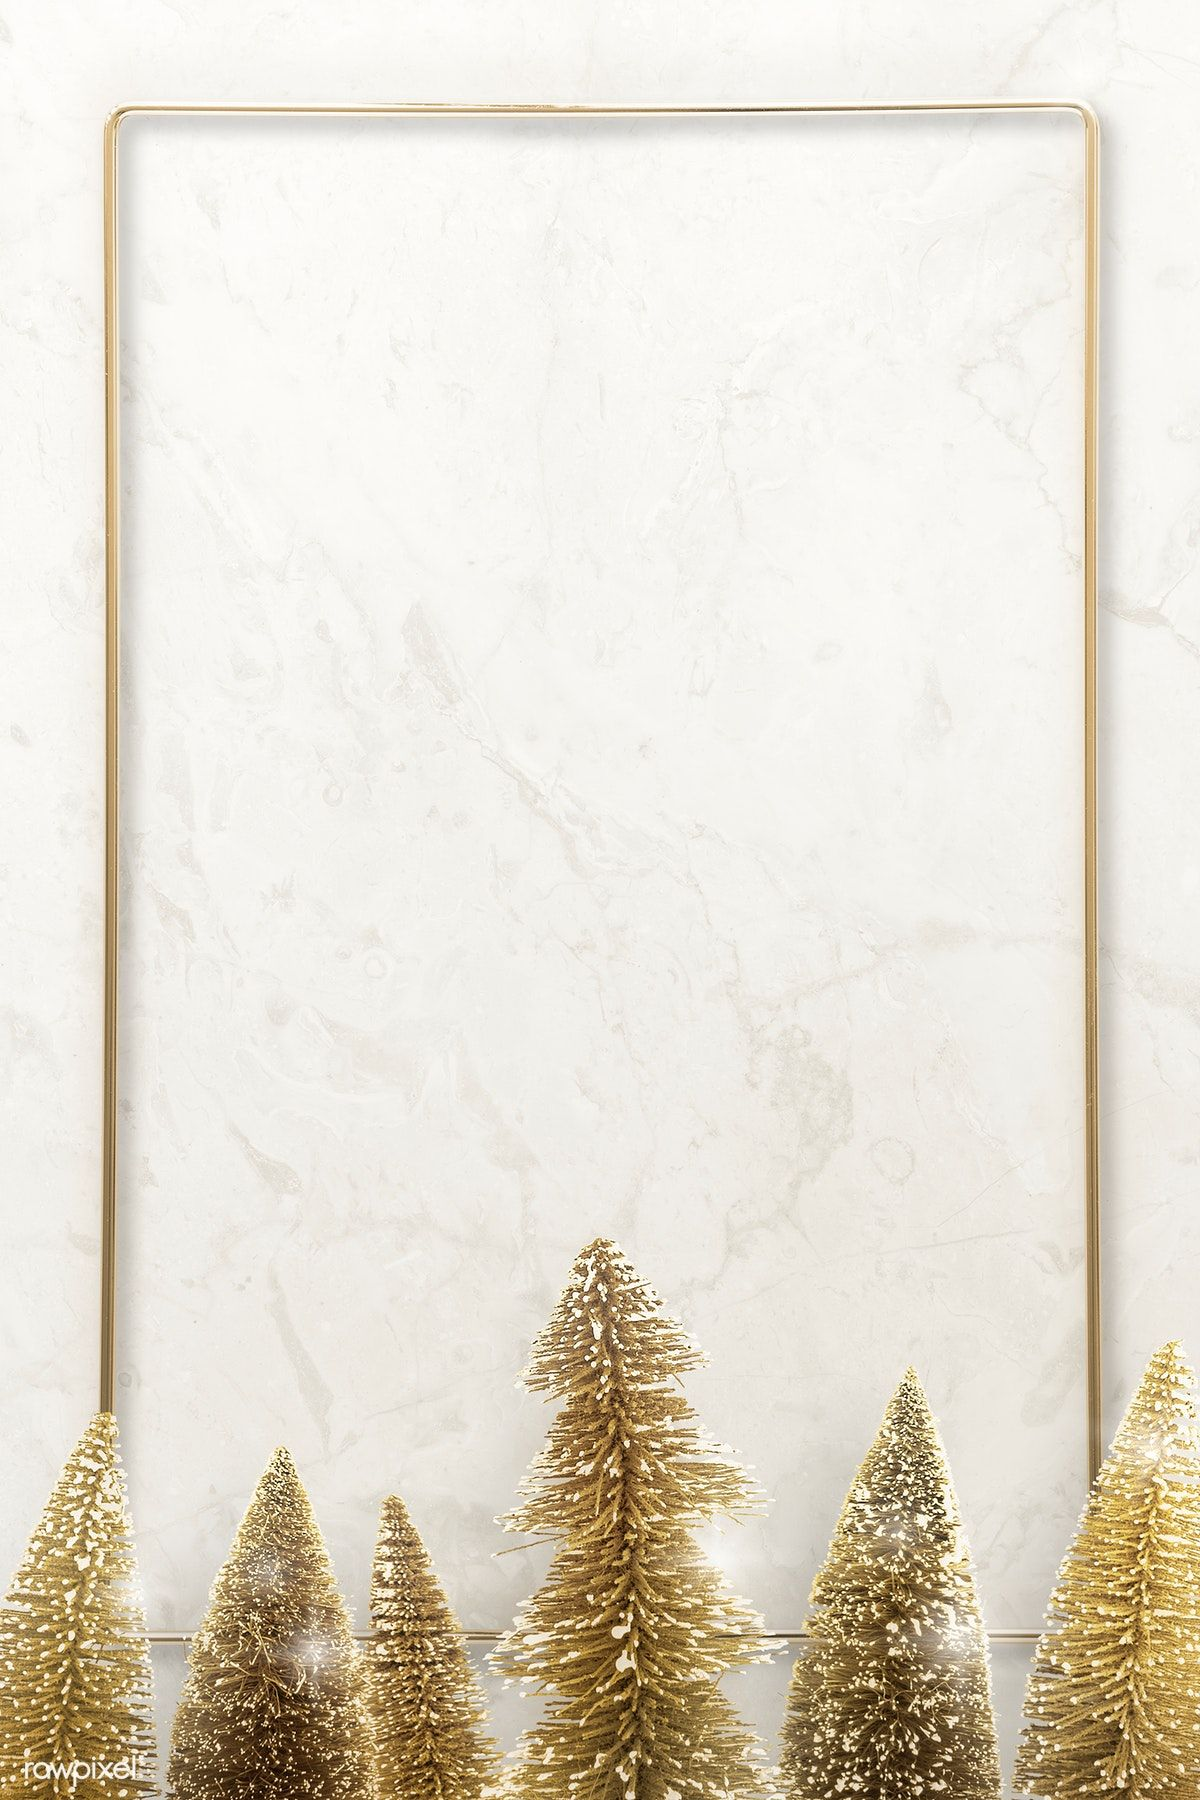 Download Premium Psd Of Gold Frame With Christmas Tree Illustration 1233121 Christmas Tree Wallpaper Christmas Background Christmas Wallpaper Backgrounds